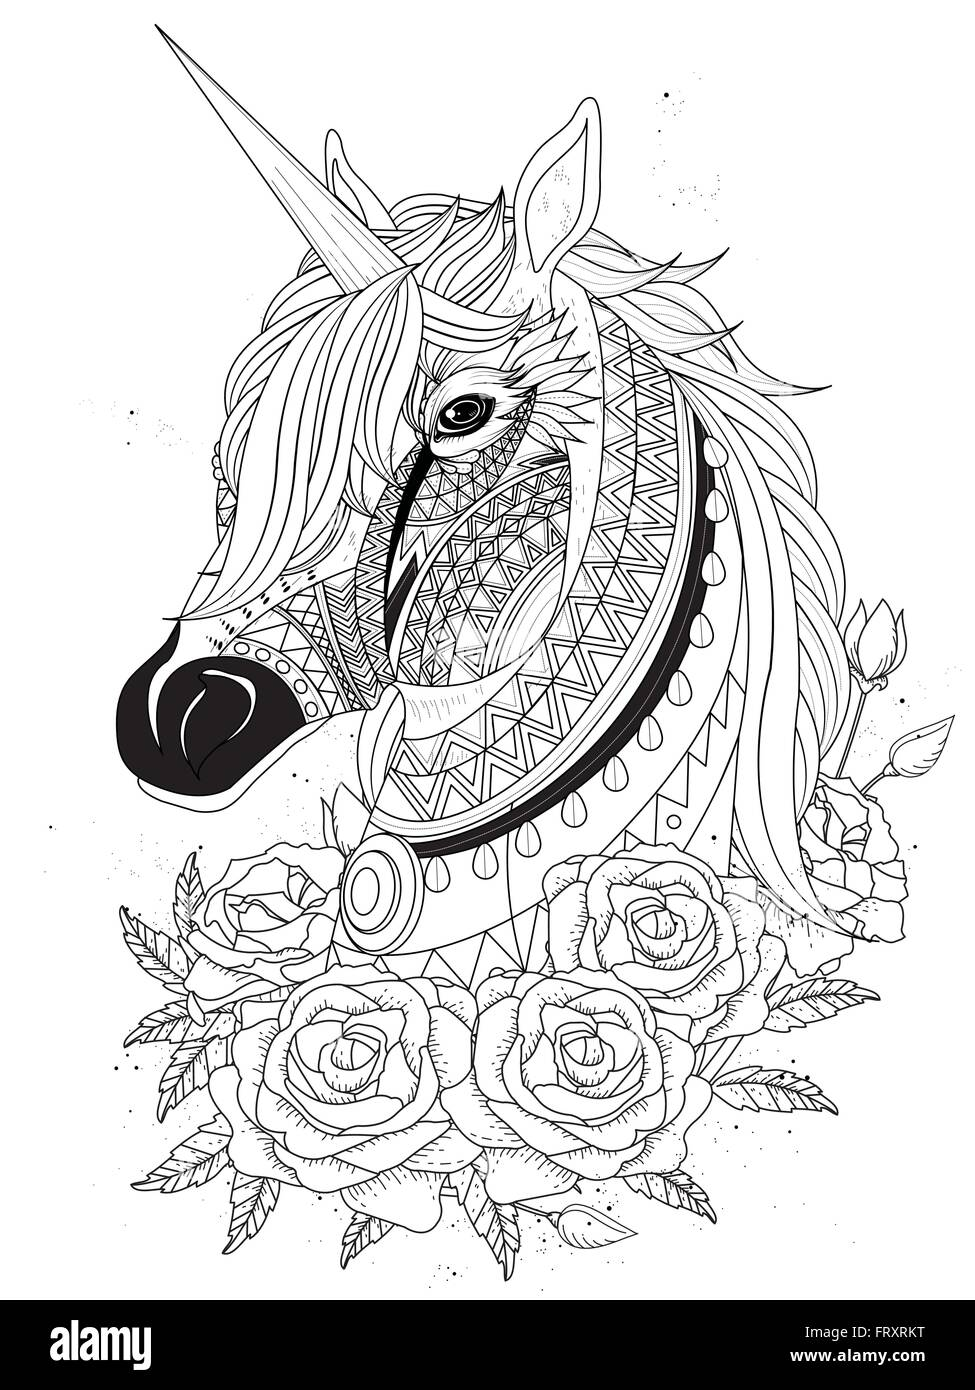 Sacred Unicorn With Roses Adult Coloring Page Stock